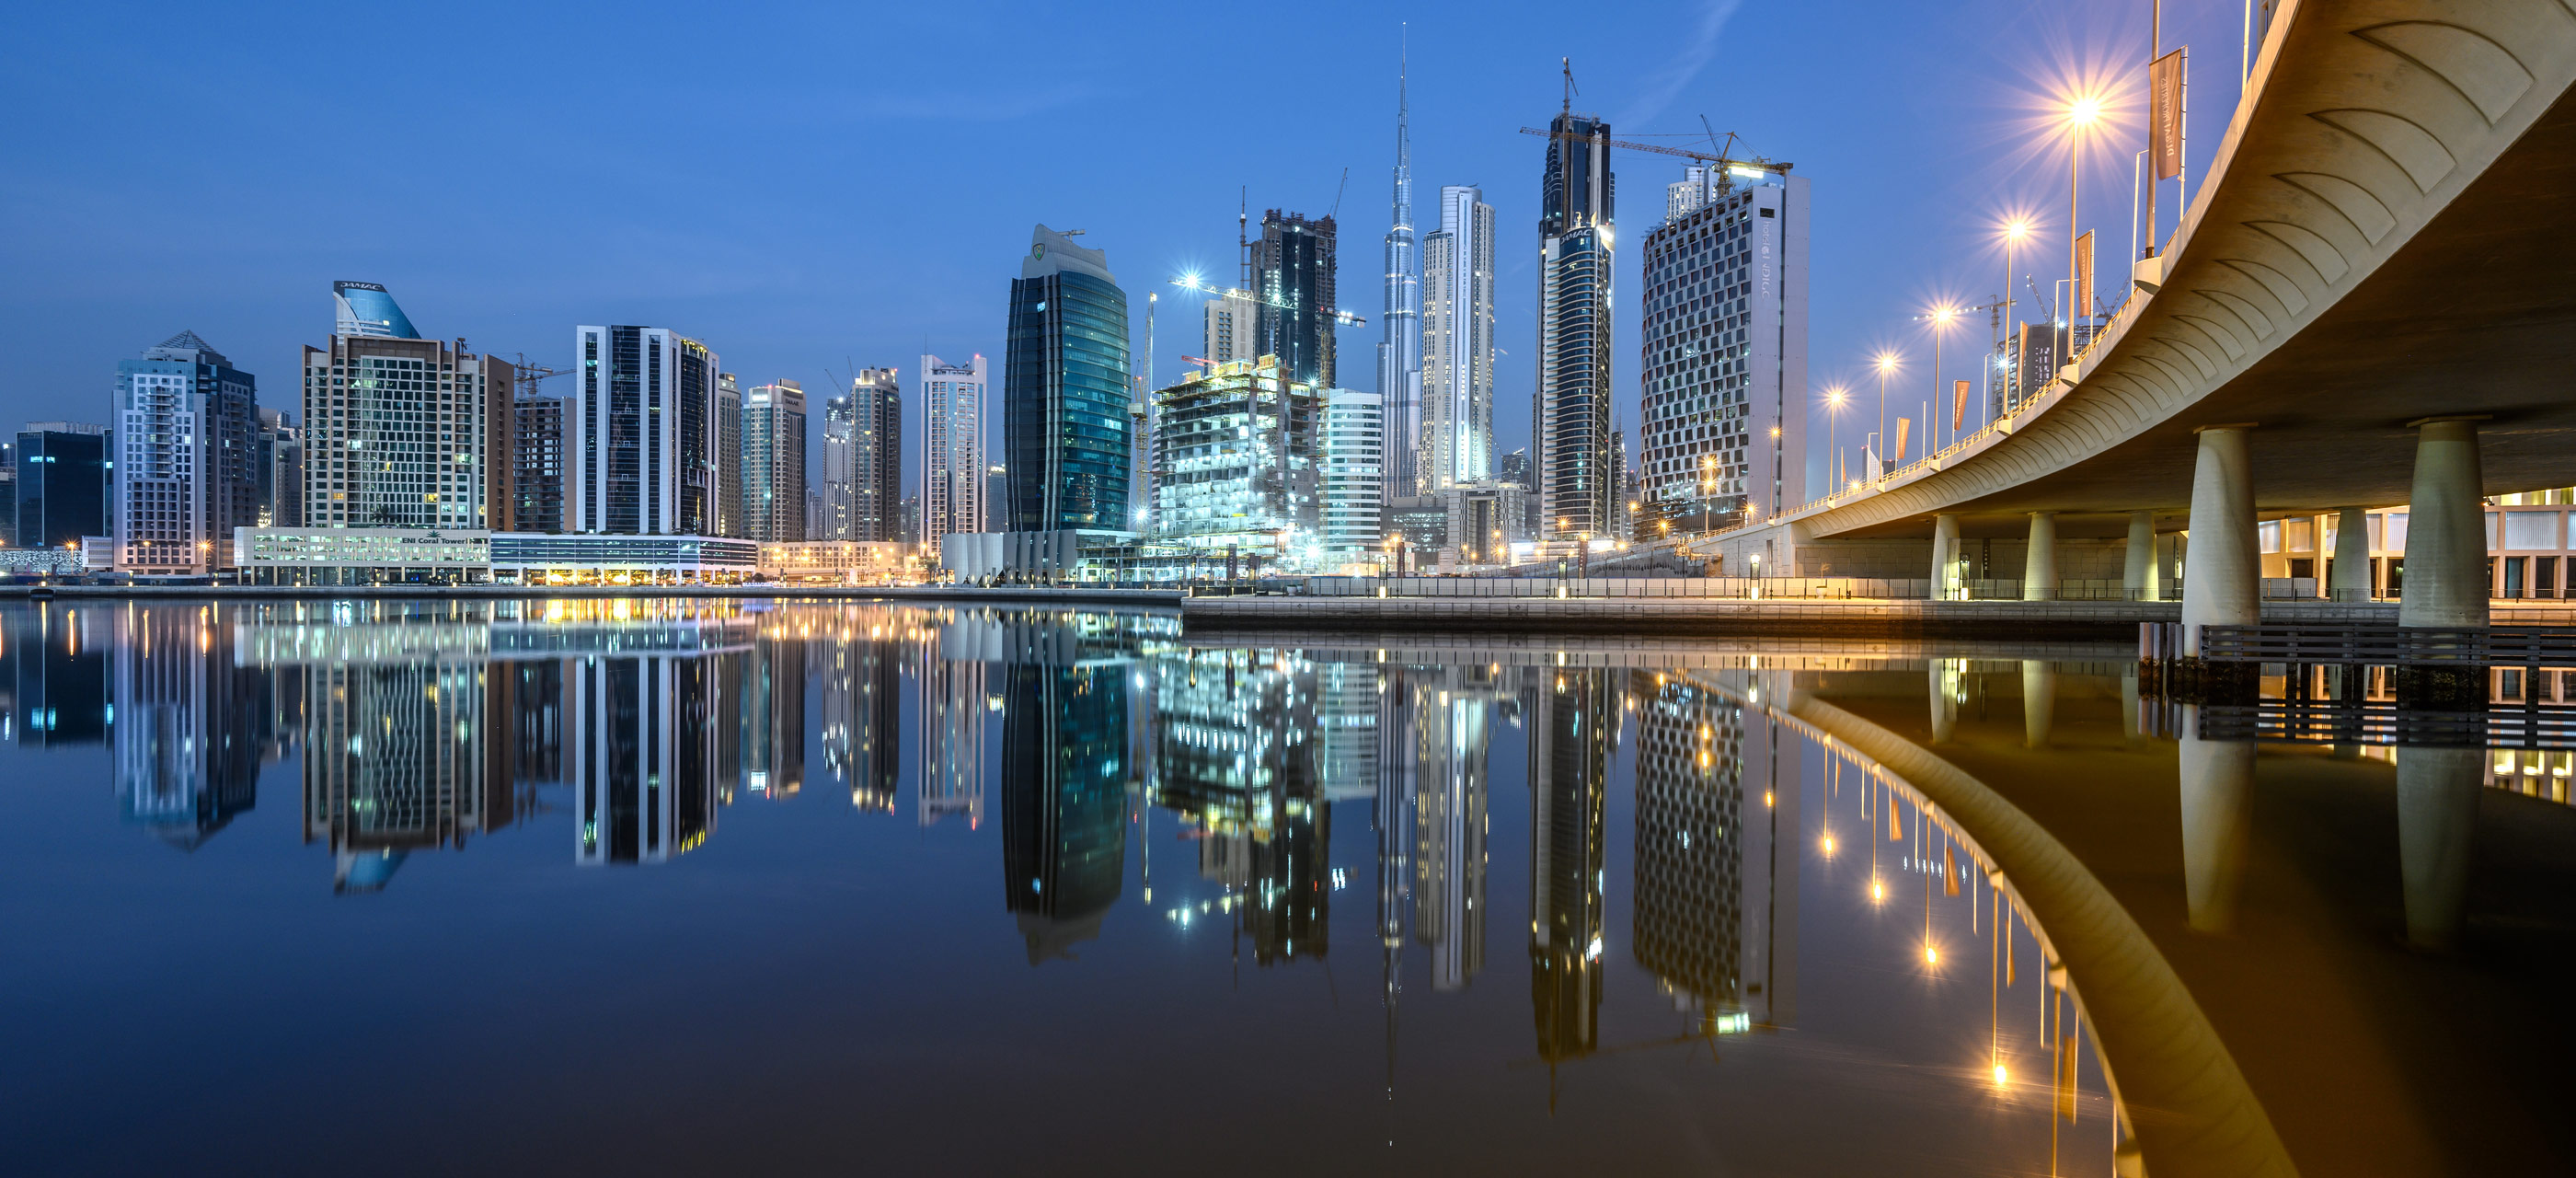 Low light image of a city and its reflection in water, captured with the NIKKOR Z 14-30mm f/4 S lens